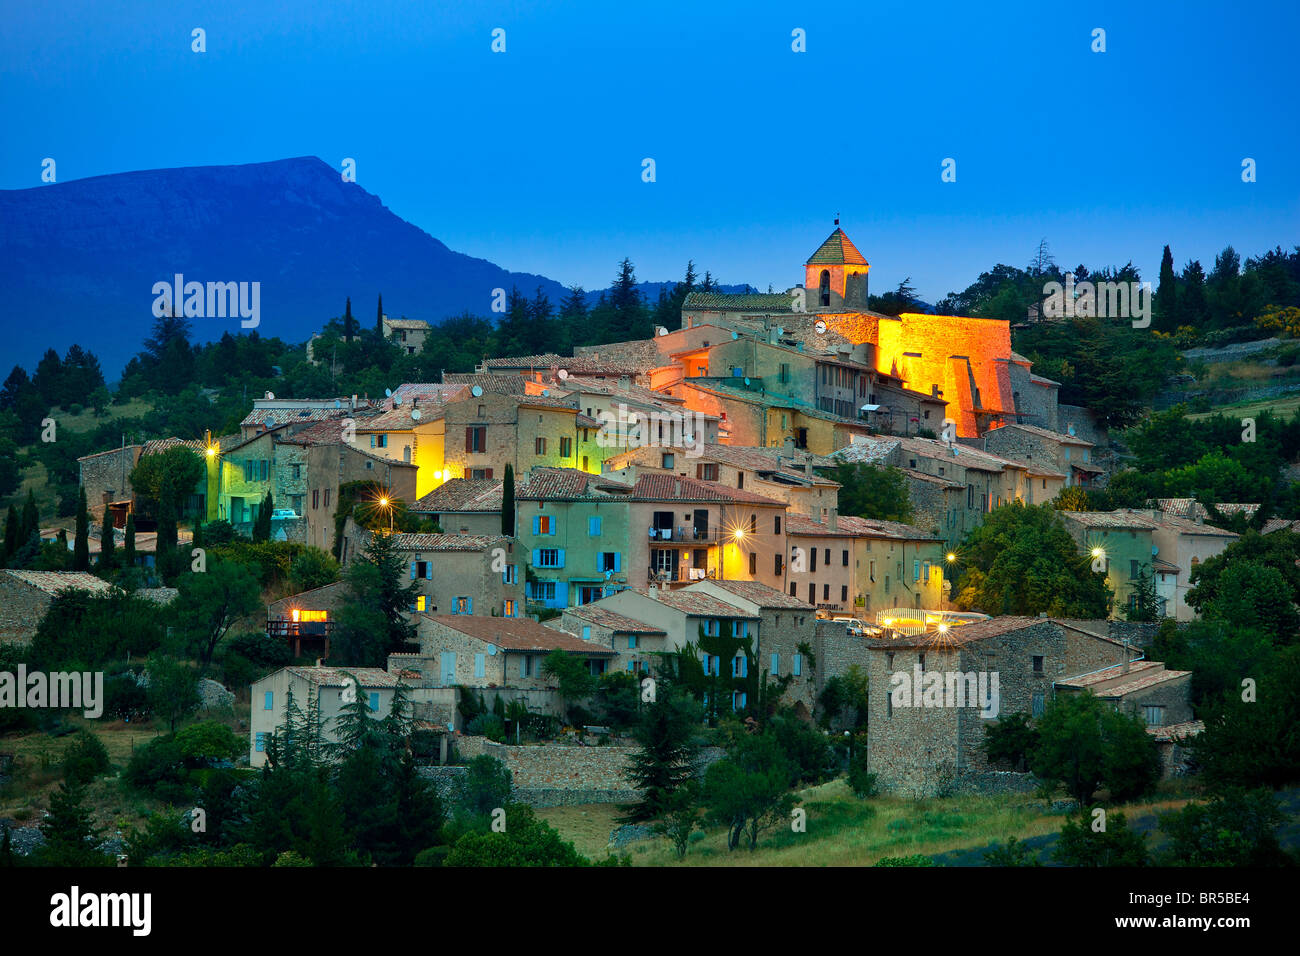 Europe, France, Vaucluse (84), perched village of Aurel - Stock Image